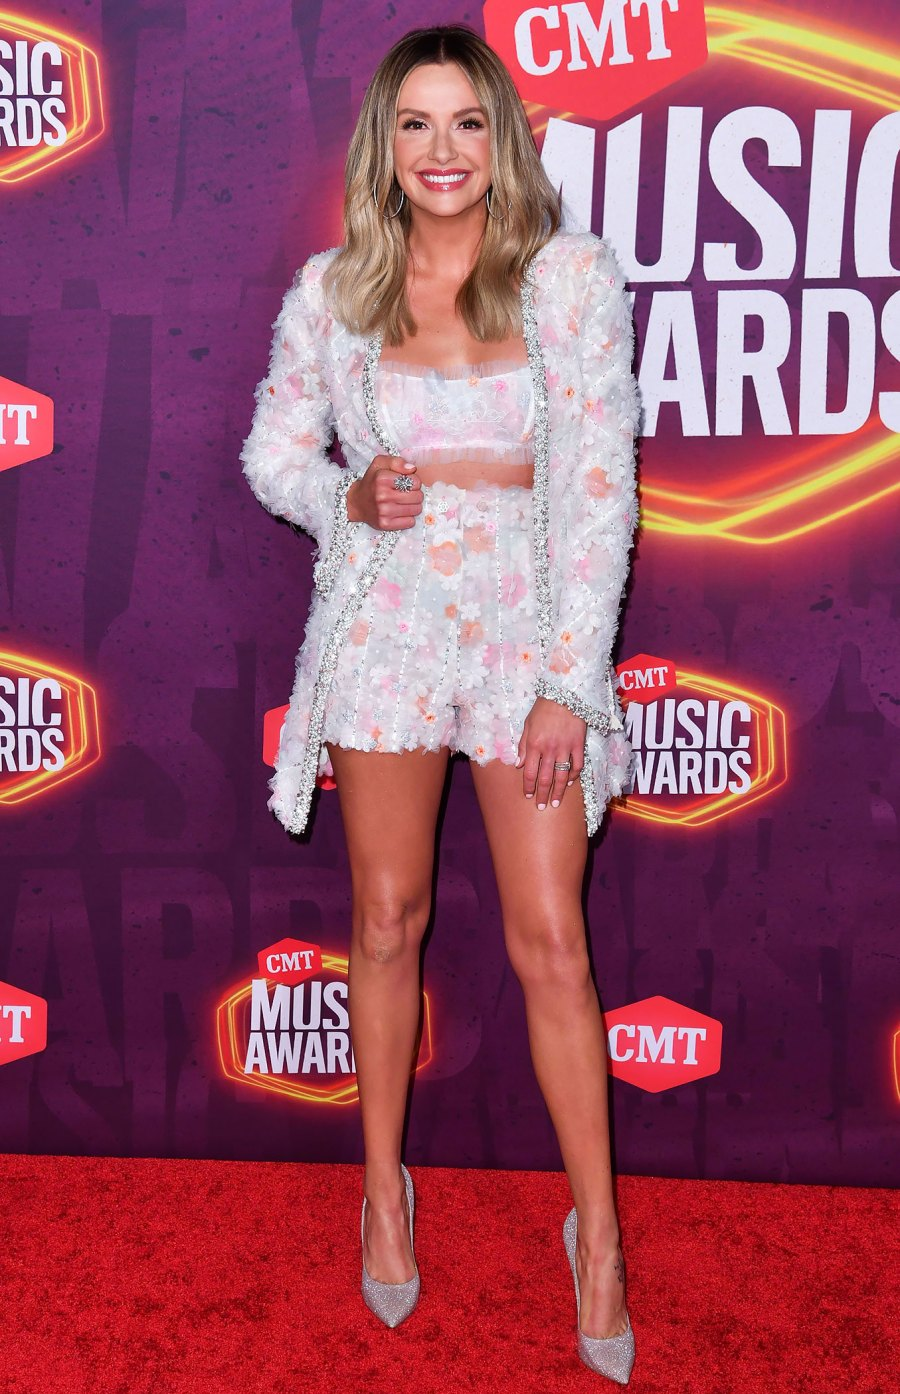 CMT Music Awards 2021 Red Carpet Arrivals - Carly Pearce